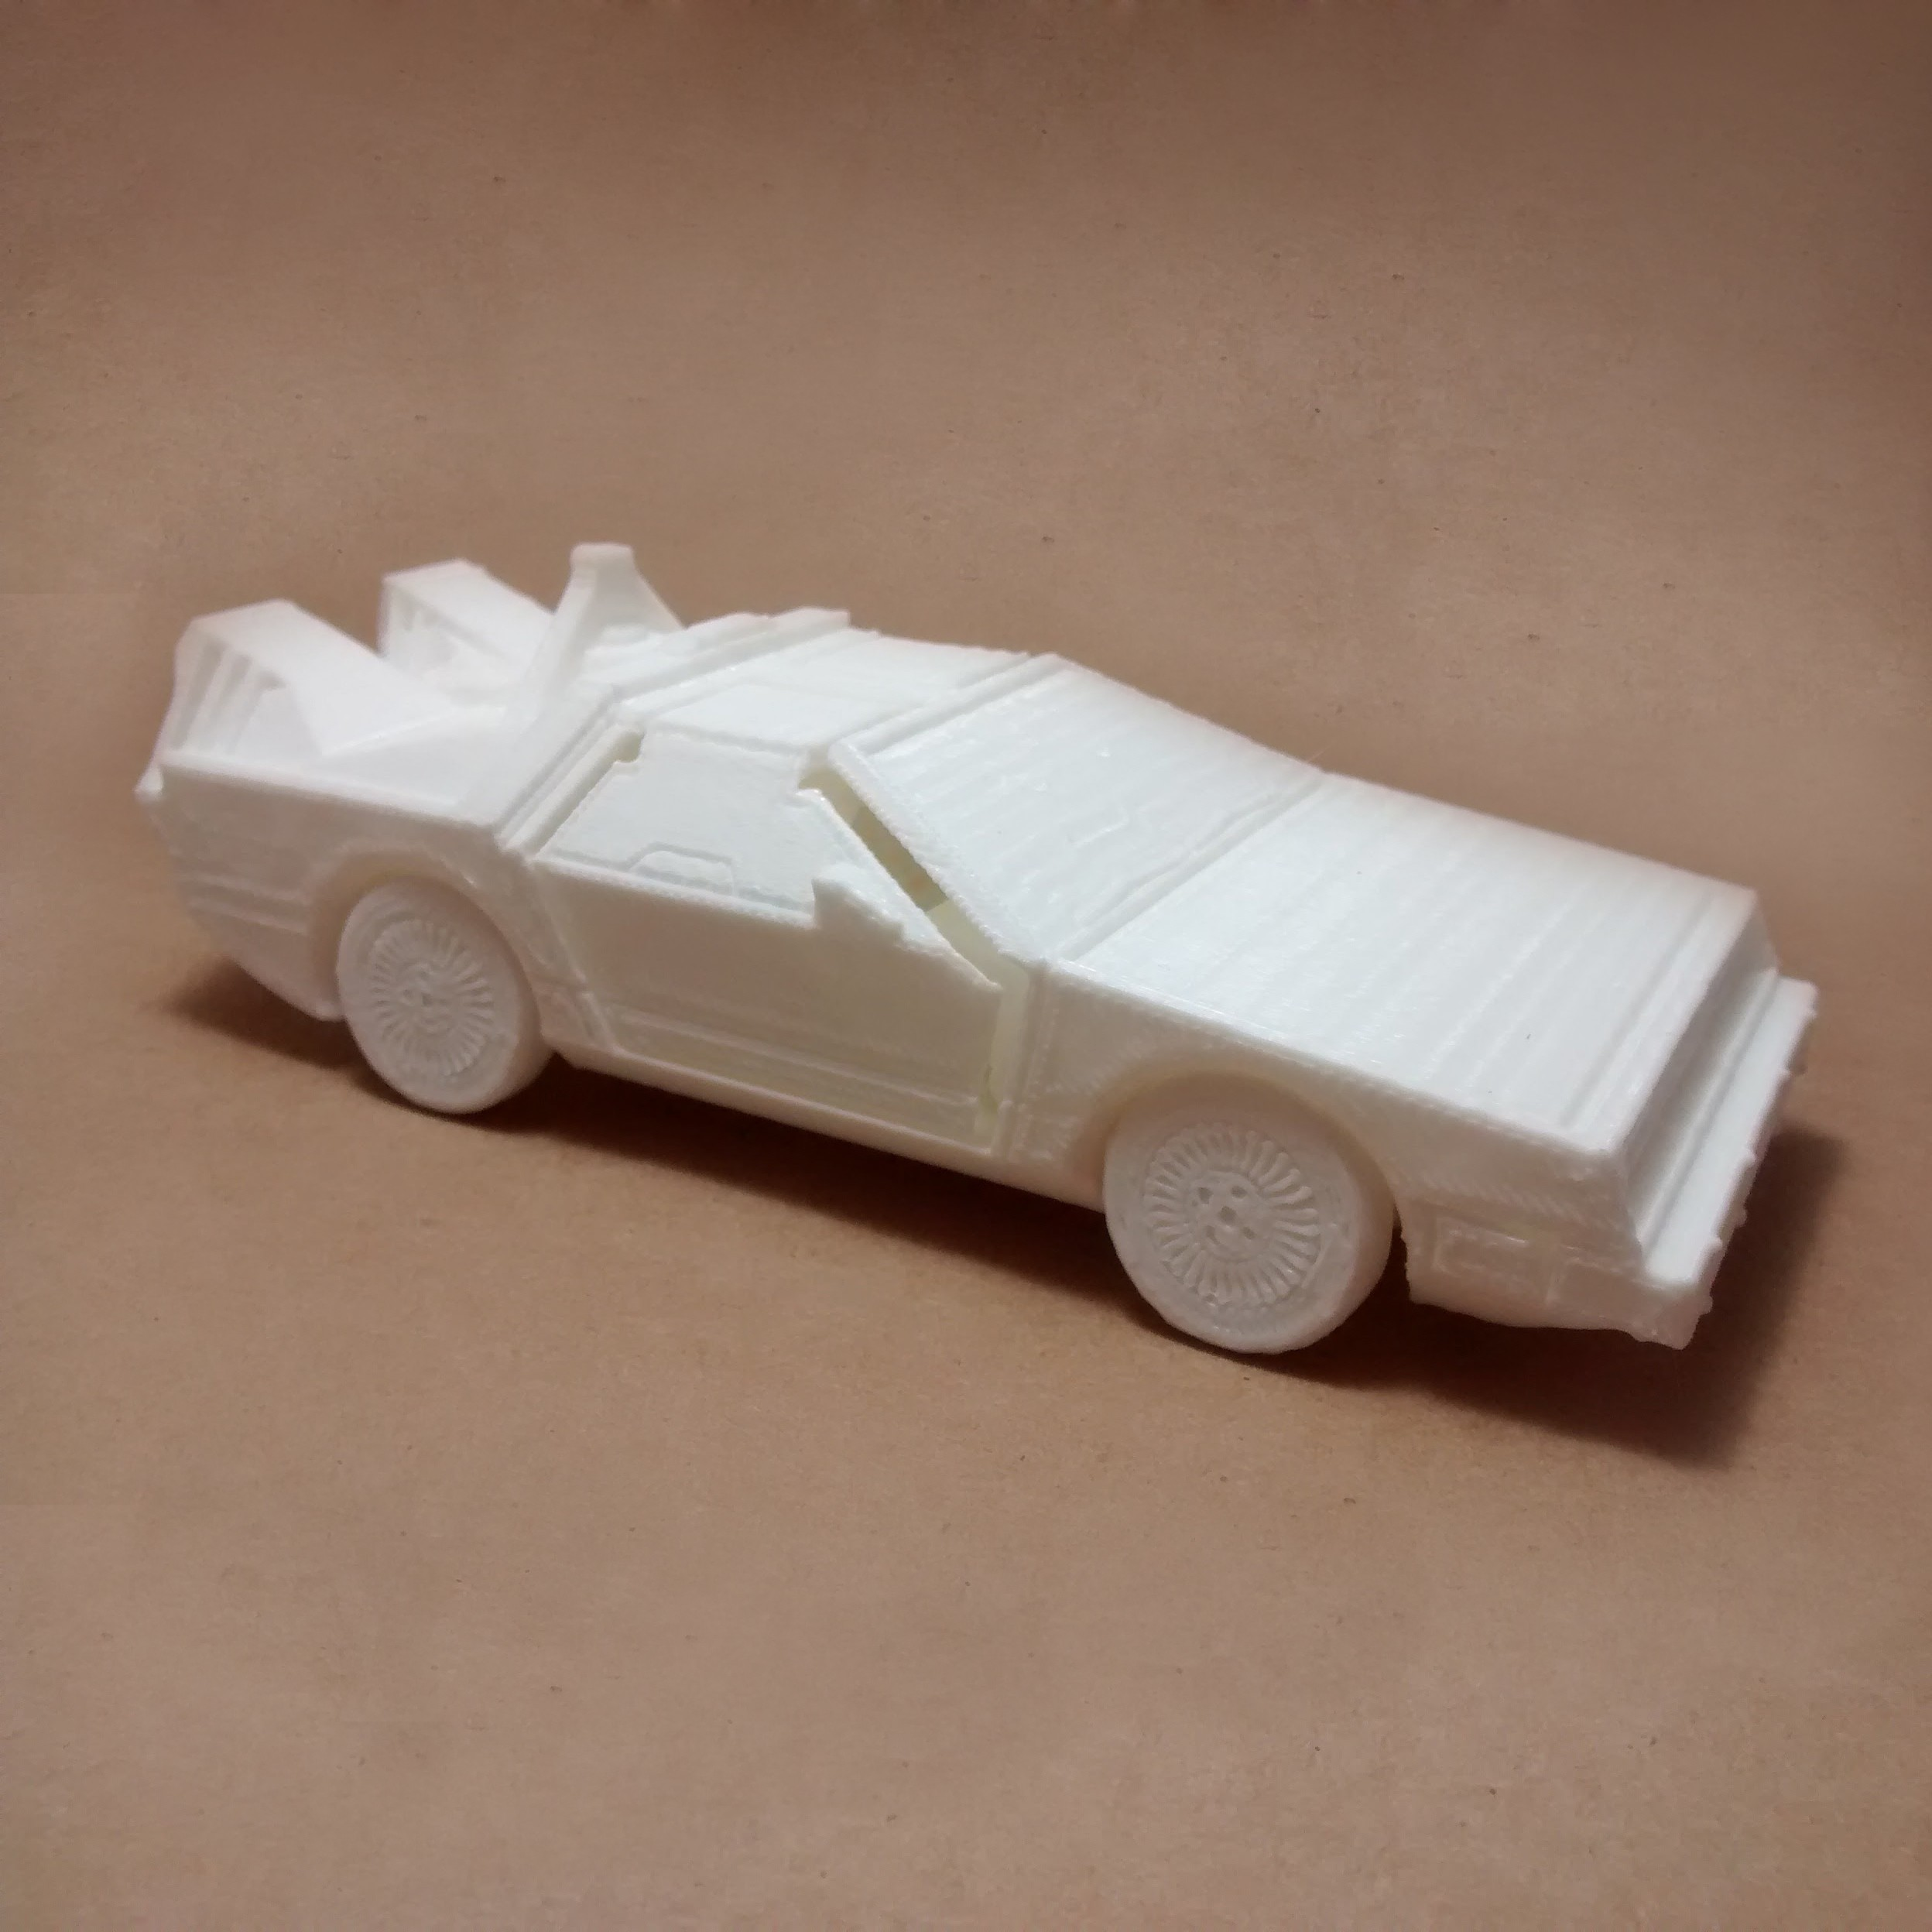 1.jpg Download STL file DeLorean DMC-12 (Back to the Future) PRINT-IN-PLACE • Template to 3D print, Atomicosstudio